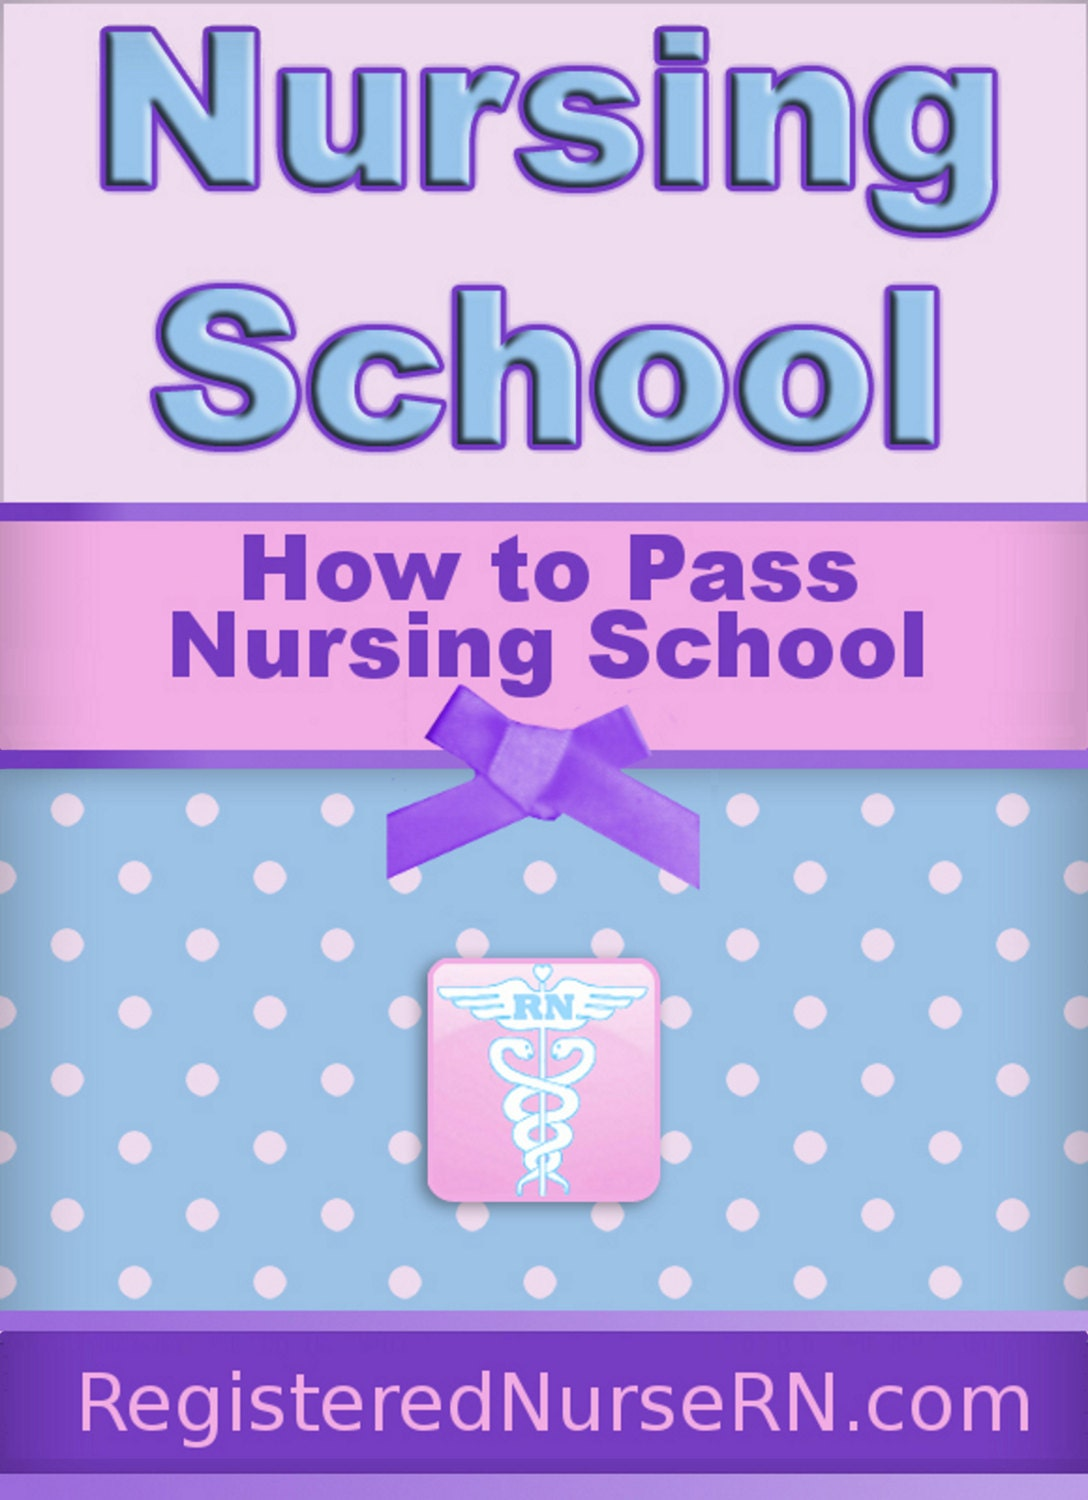 how to pass nursing school guide book ebook includes by zaxpar